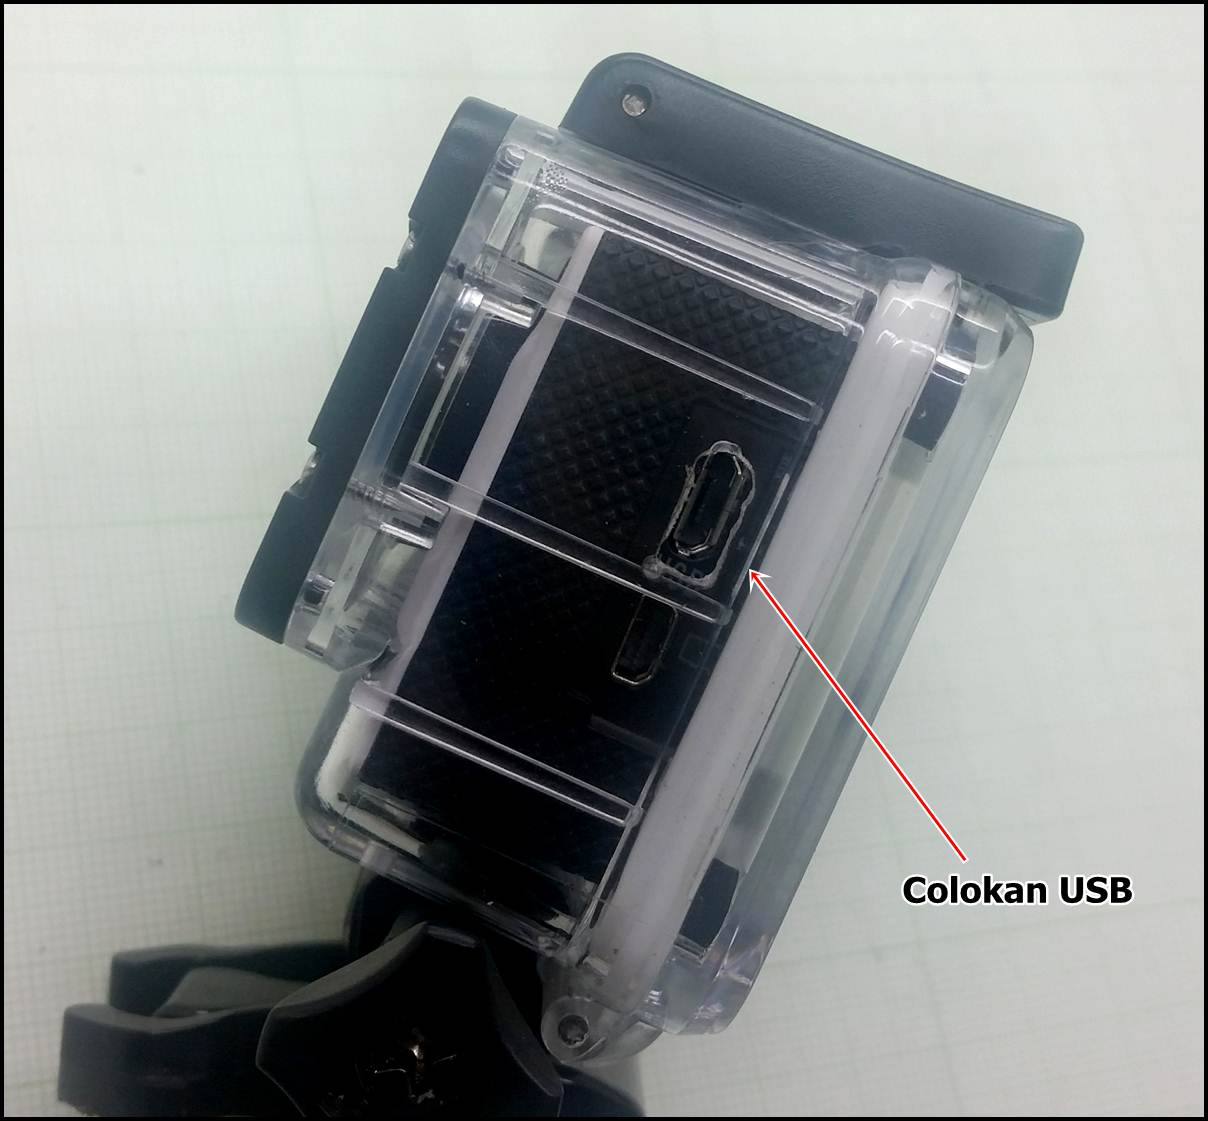 colokan usb action cam